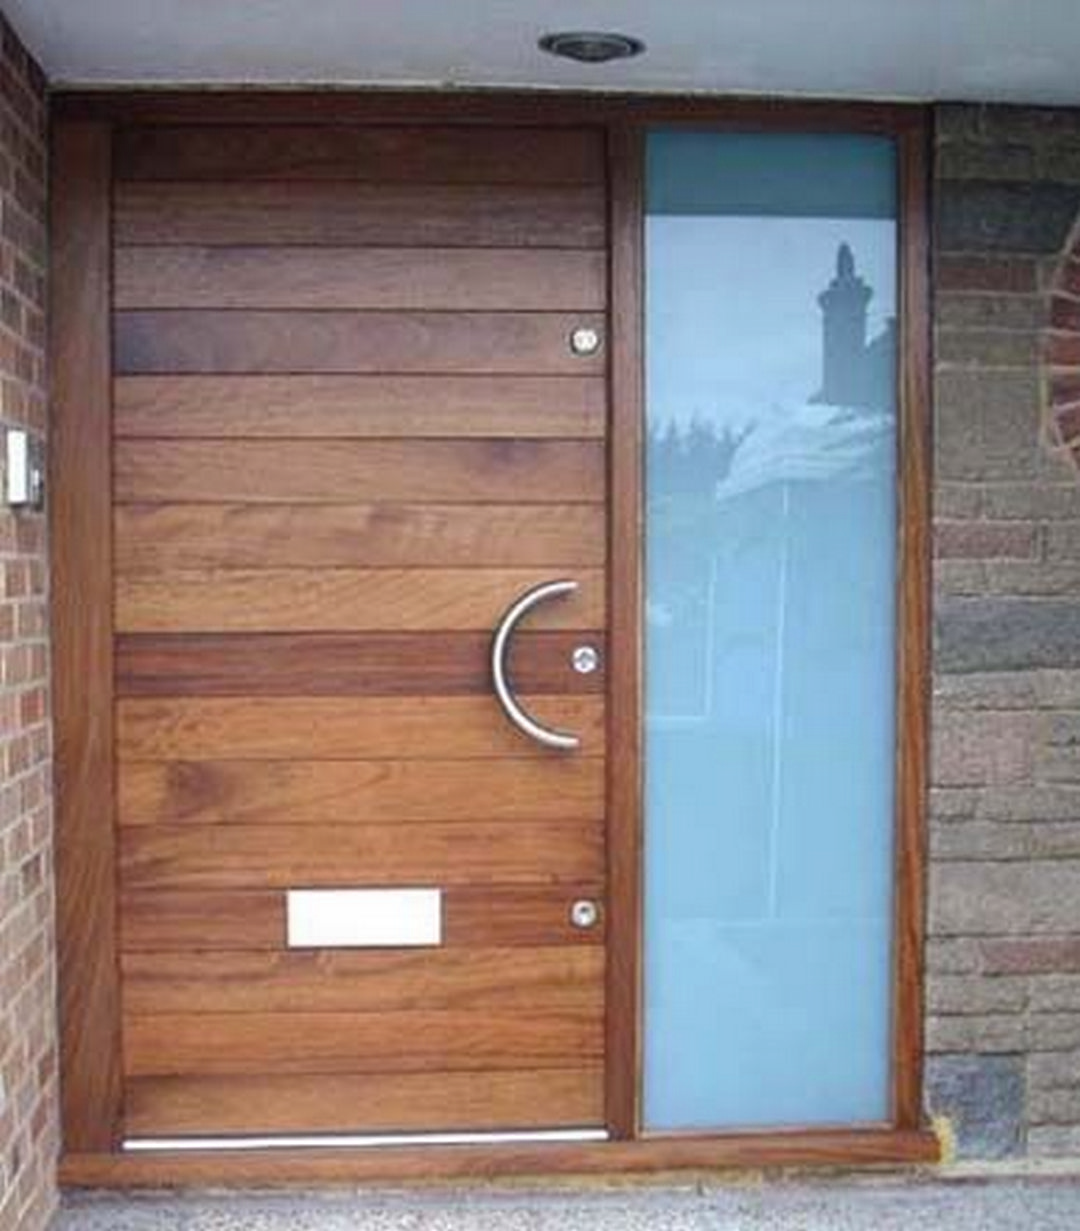 29 Nice Contemporary Exterior Door Design Ideas | House Design and House Door Design Ideas Html on house facade design ideas, house entry design ideas, house courtyard design ideas, house wall design ideas, house entrance design ideas, house exterior design ideas, house fence design ideas, house room design ideas, house deck design ideas, house siding design ideas, house floor design ideas,